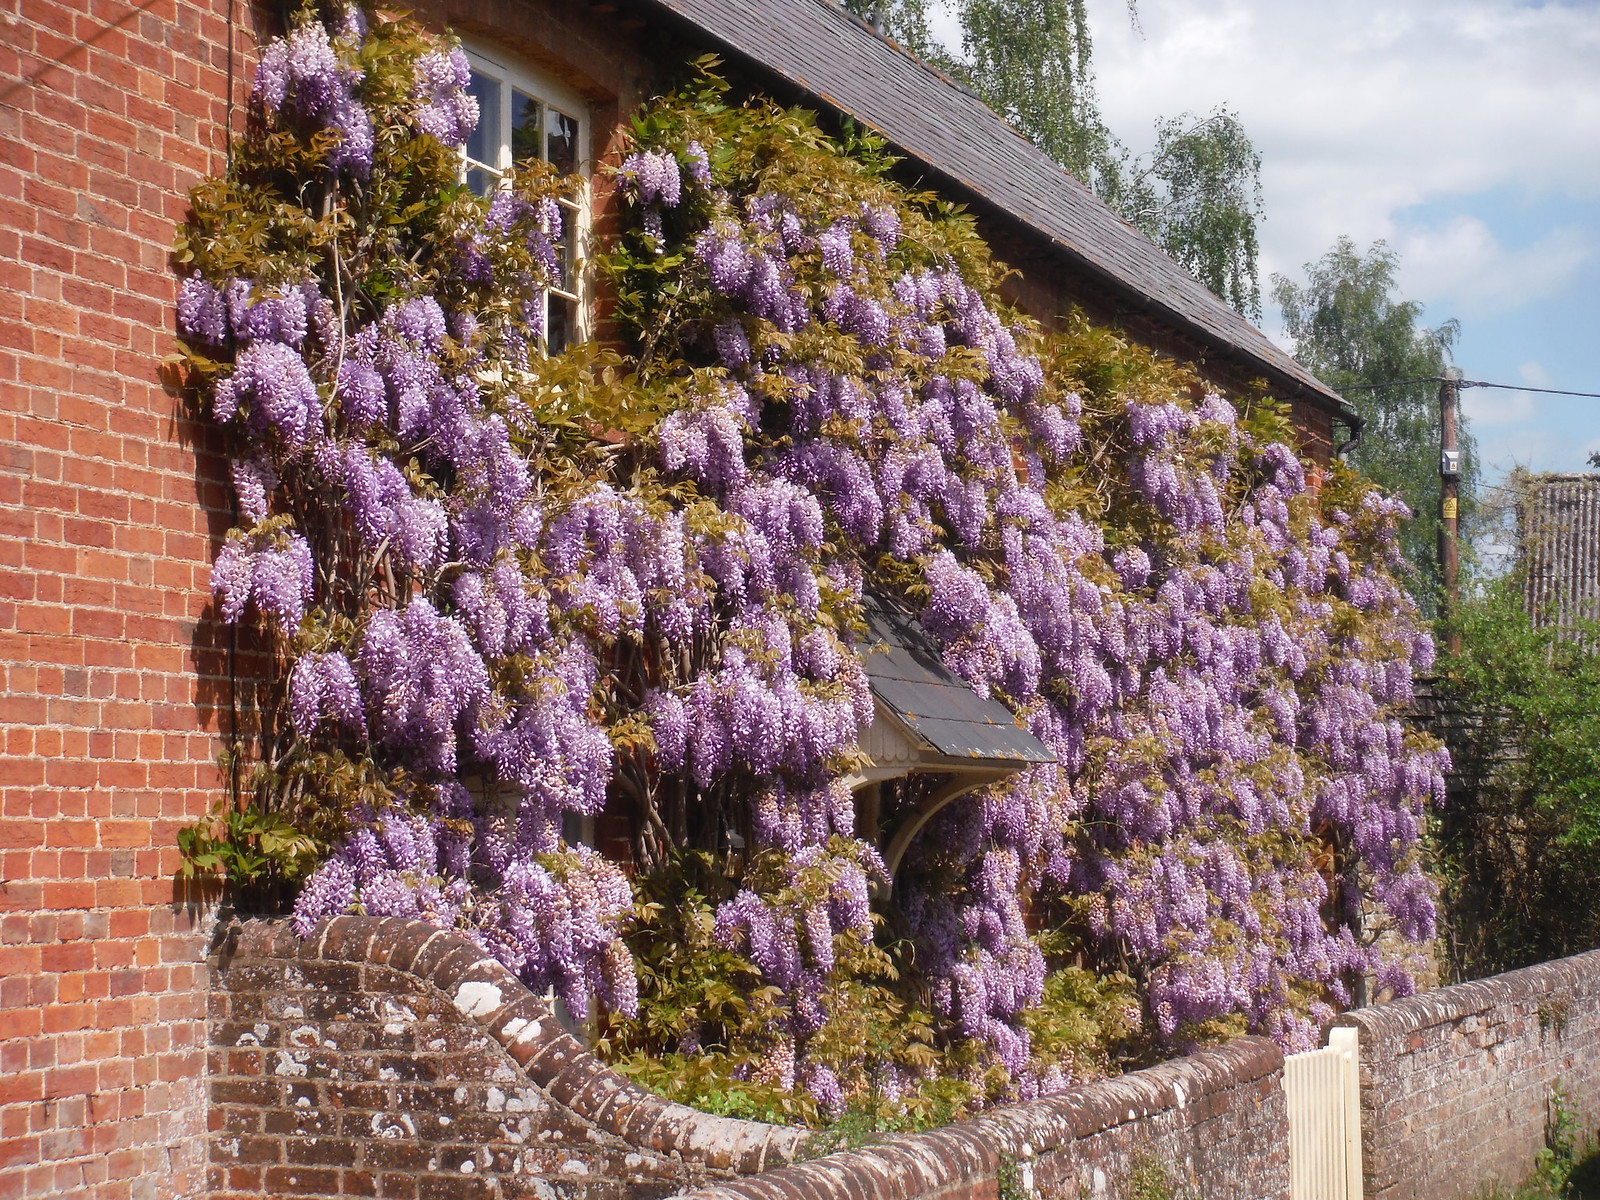 Wisteria-infested House, Waterstock SWC Walk 190 - Thame Circular (Extension)